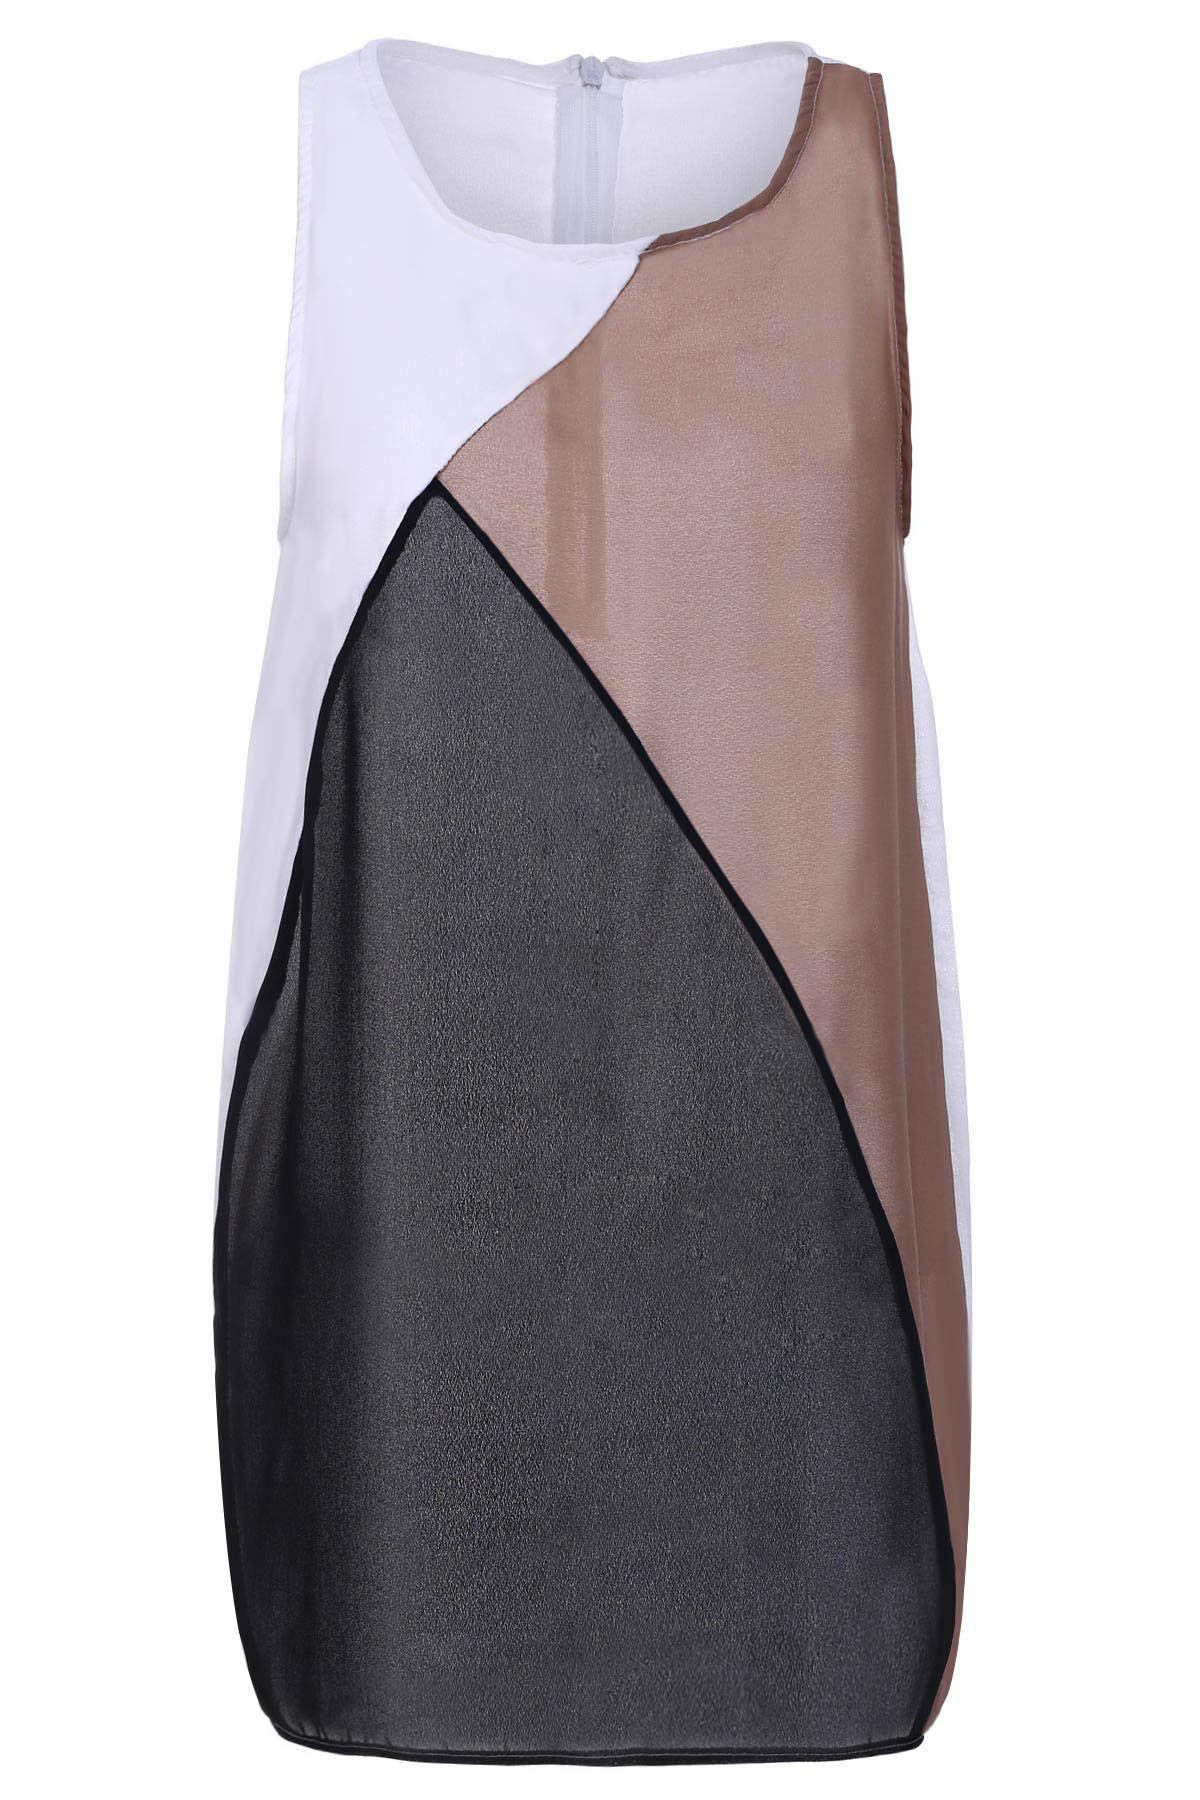 Elegant Round Collar Sleeveless Color Block Bodycon Dress For Women - COLORMIX L